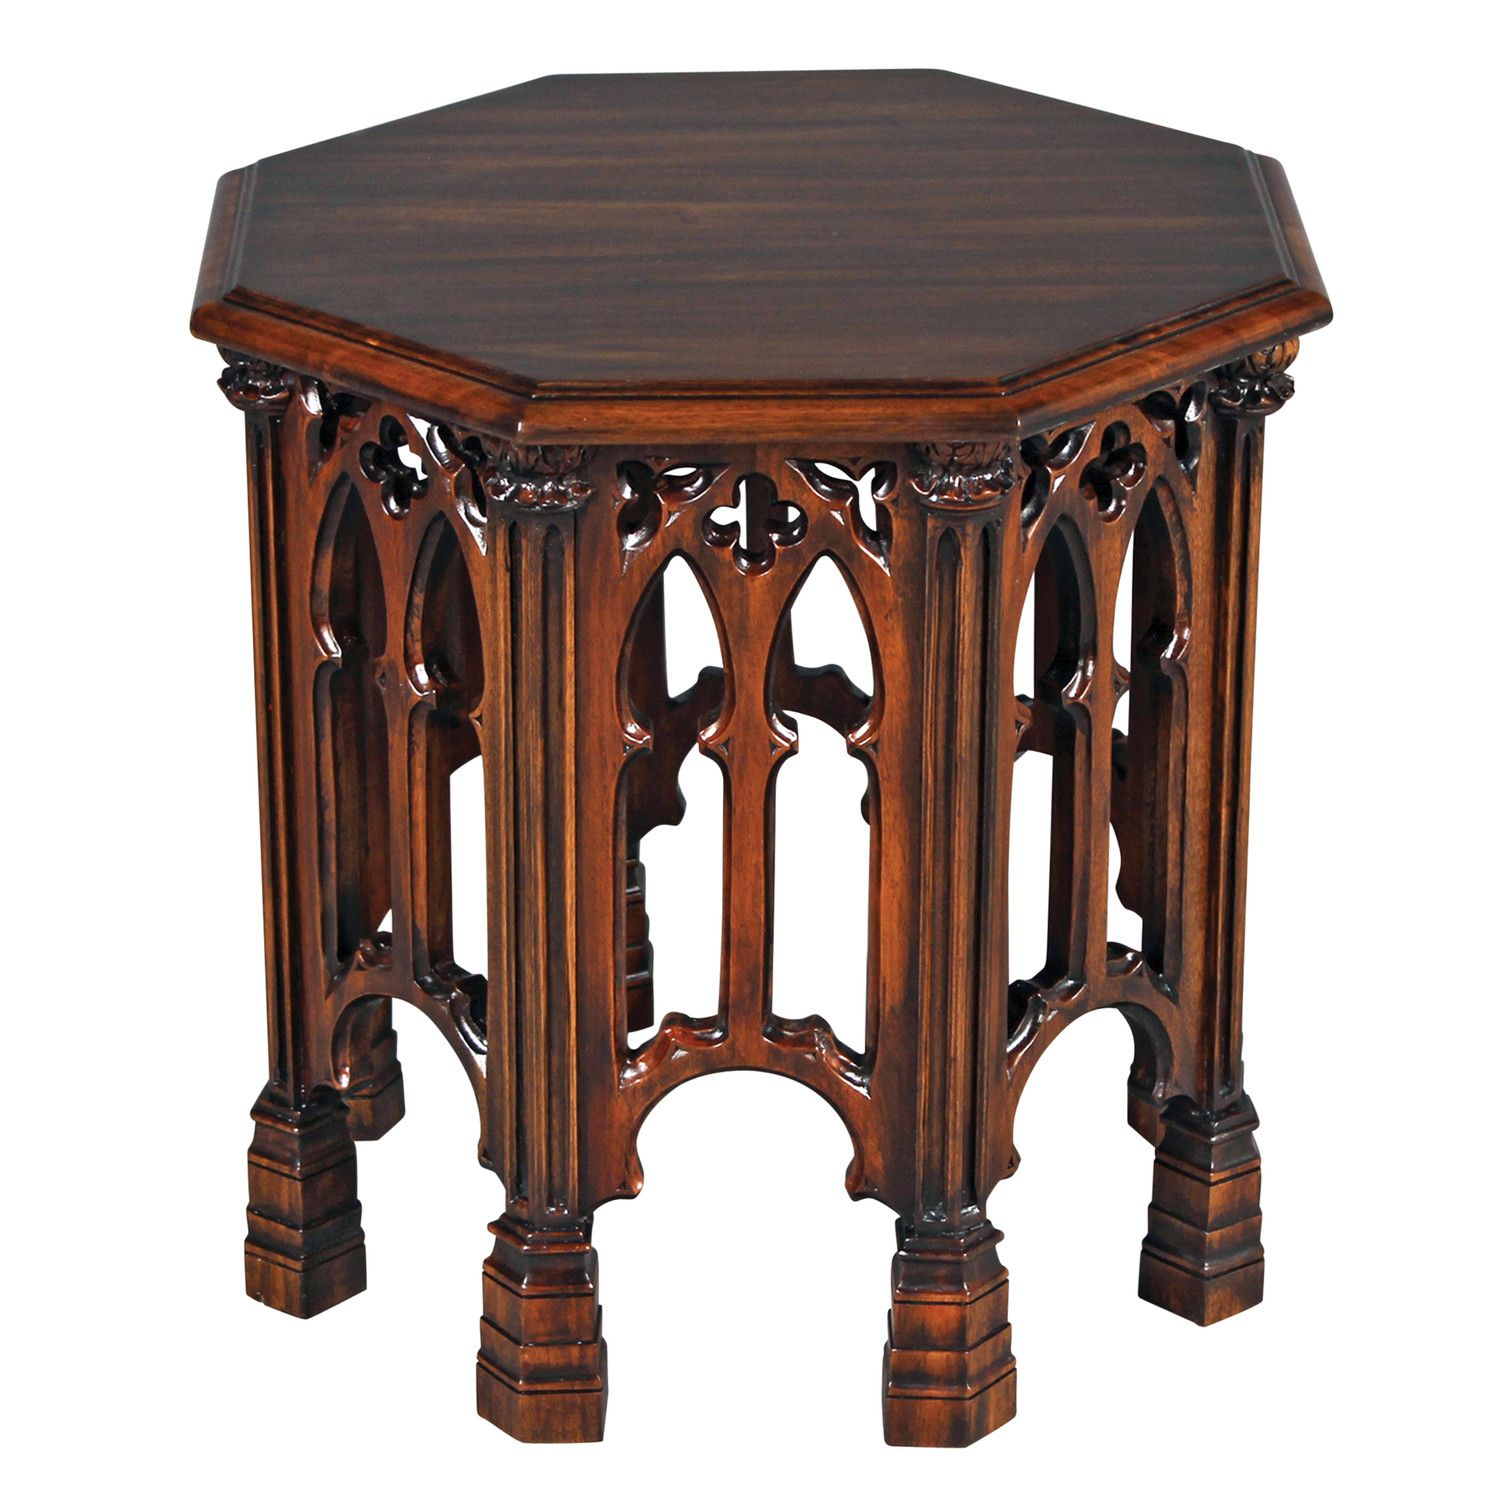 Gothic Revival End Table Wayfair Game Of Thrones Pinterest  # Muebles Goticos